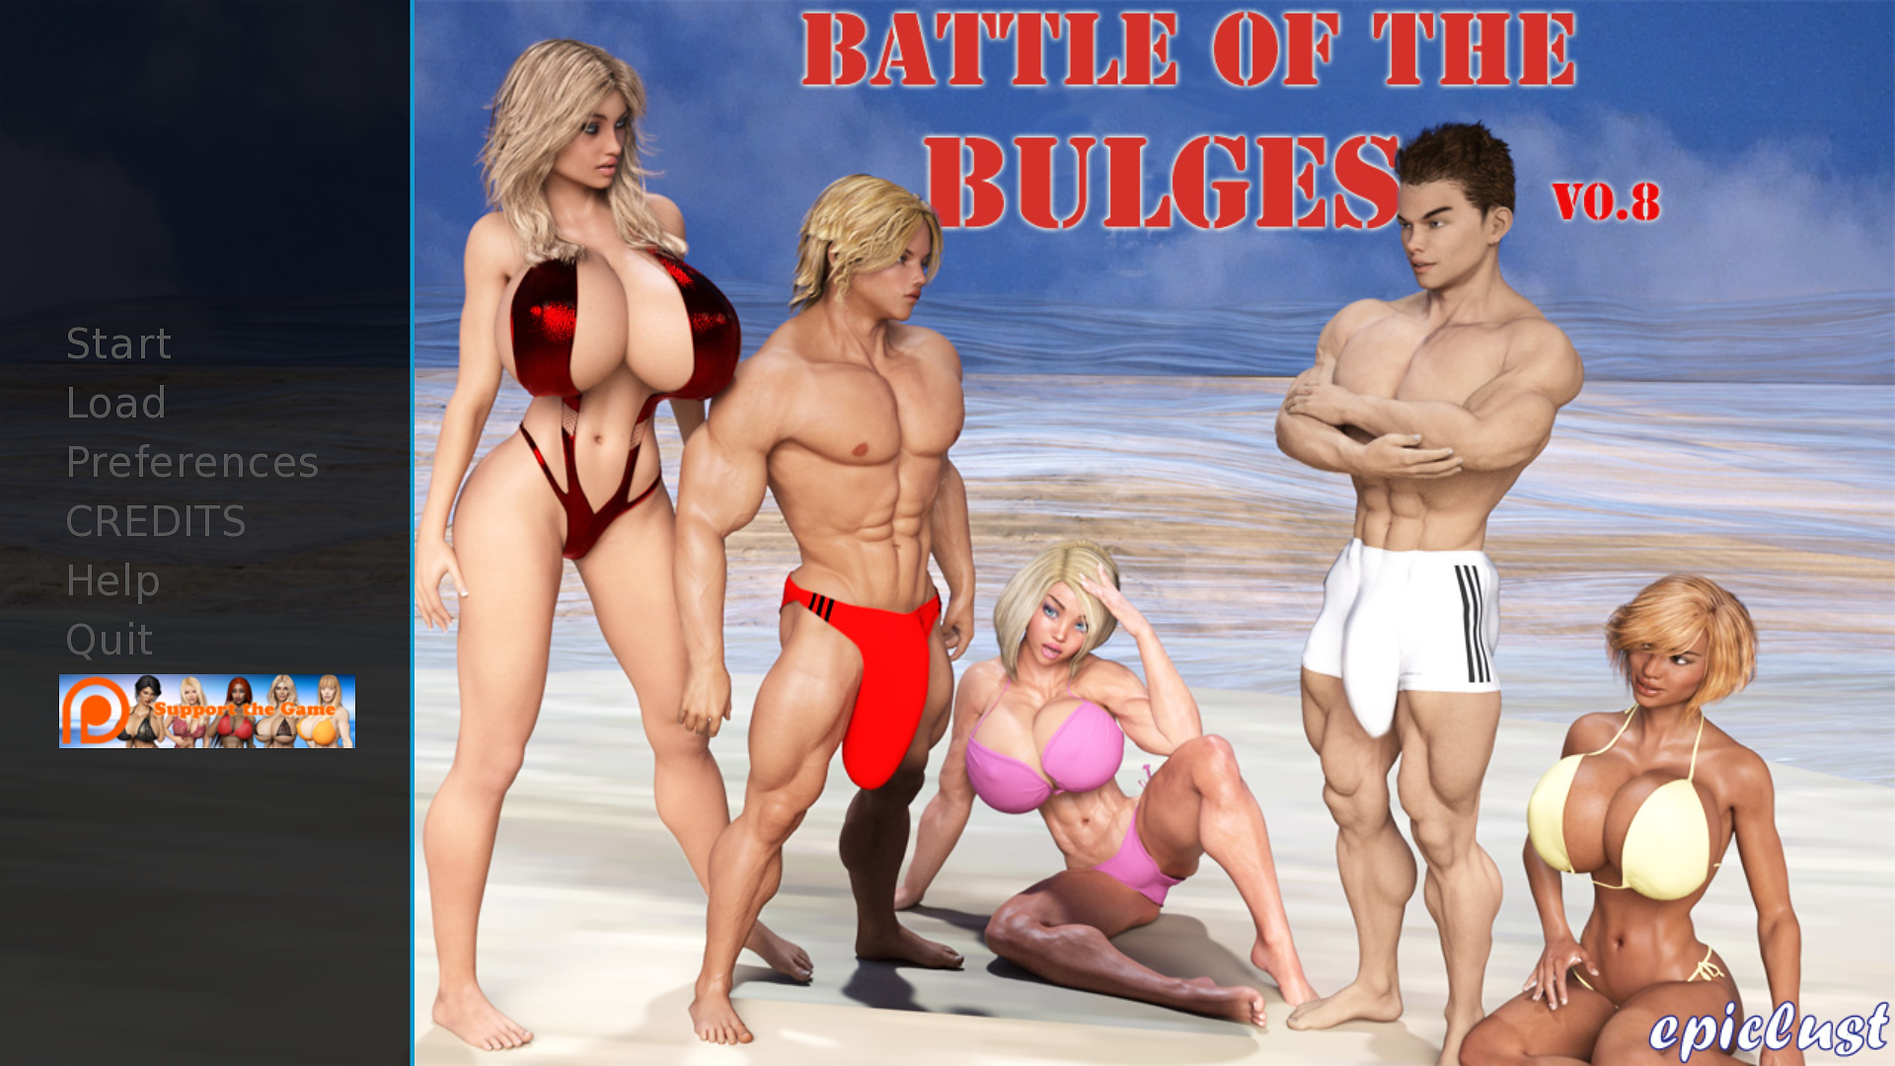 Battle of the Bulges Main - Haru's Harem